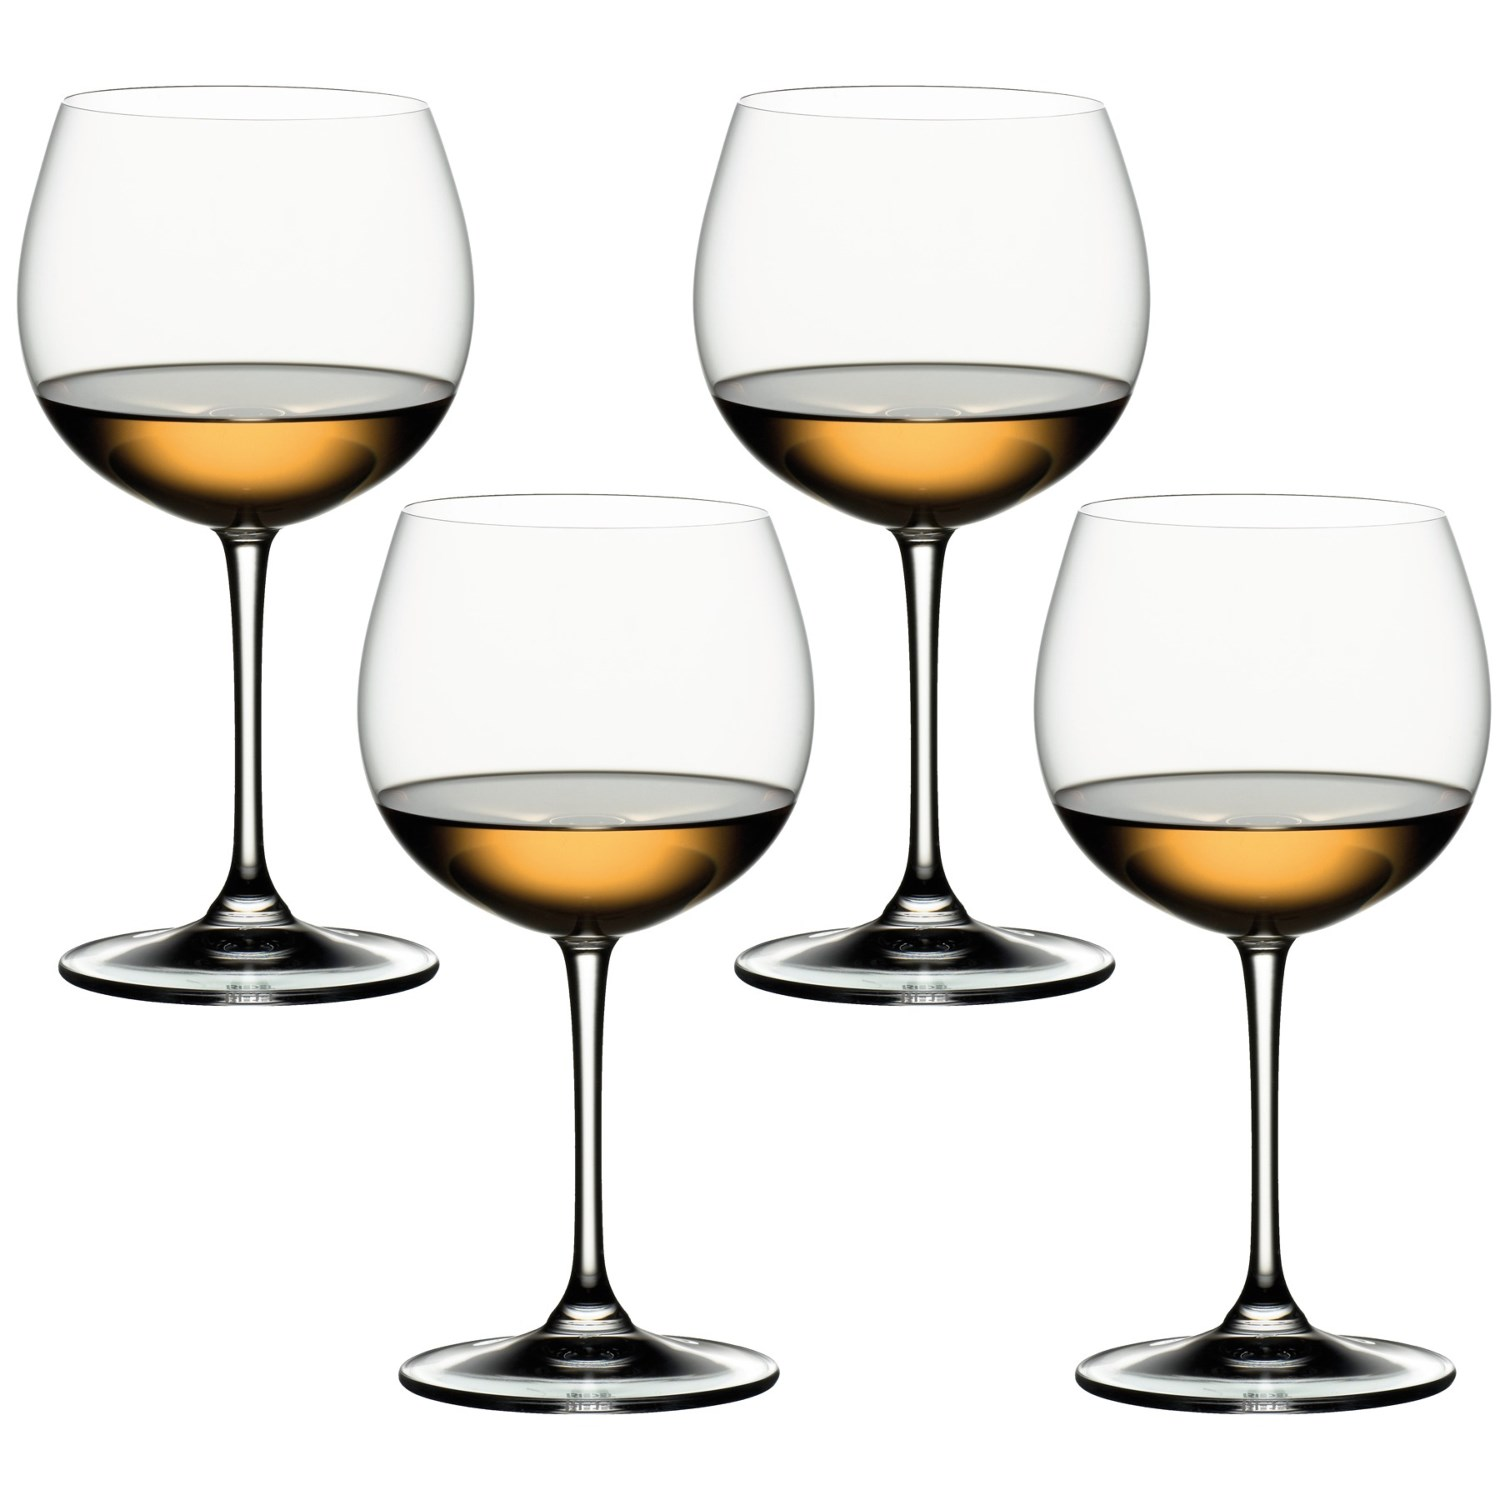 Chardonnay Wine Glass Riedel Vinum Xl Chardonnay Wine Glasses Set Of 4 8006a